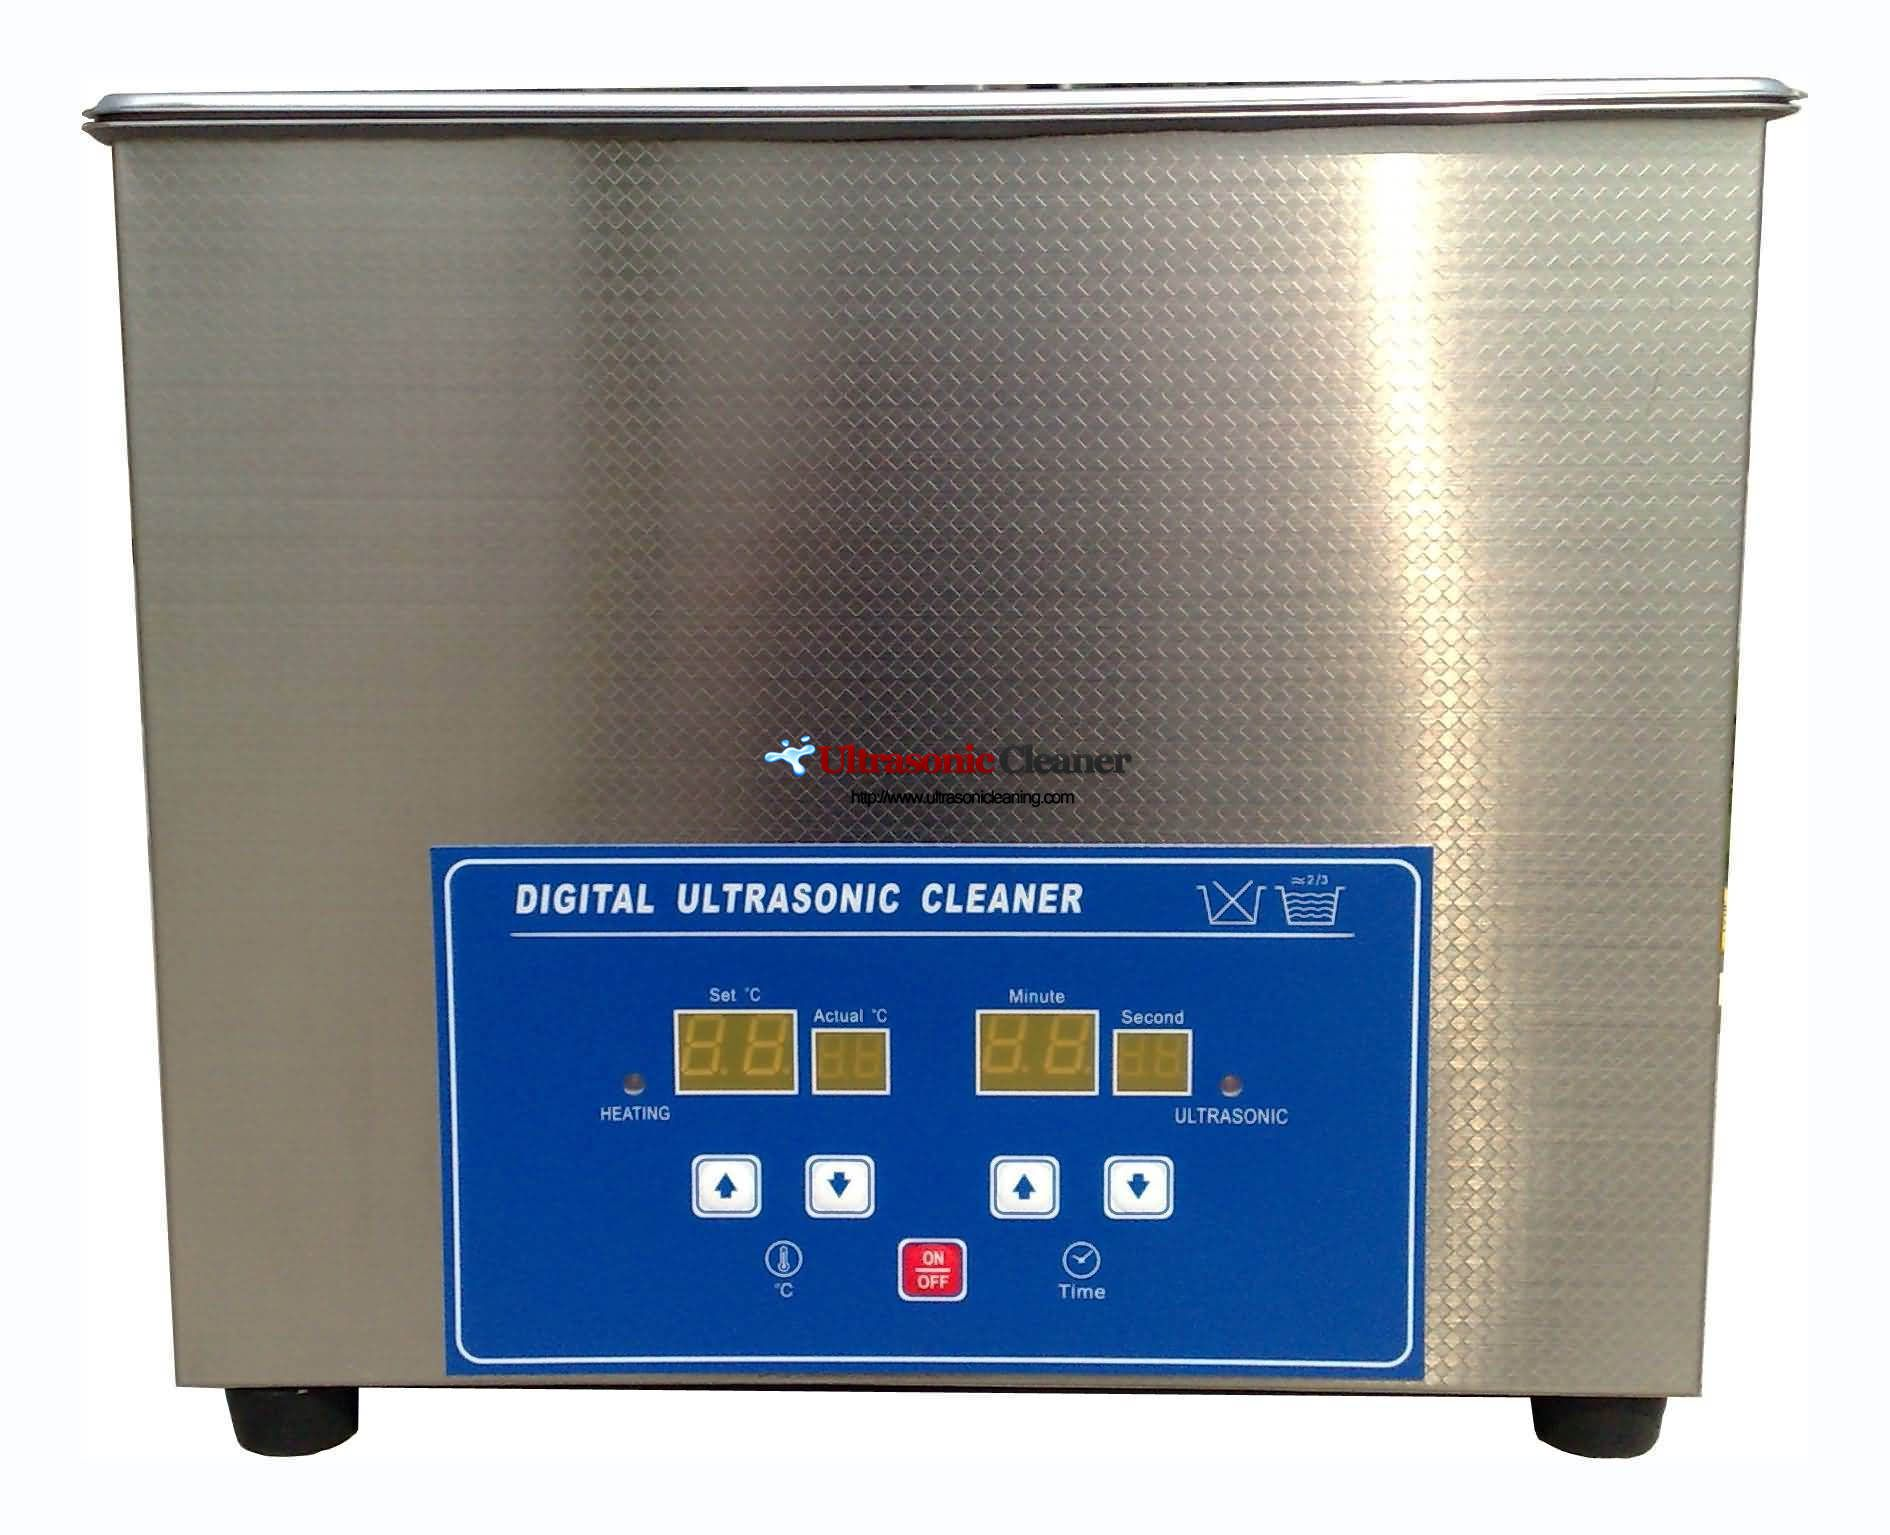 Ultrasonic Cleaner Price 7999 rs · Ultrasonic Cleaner